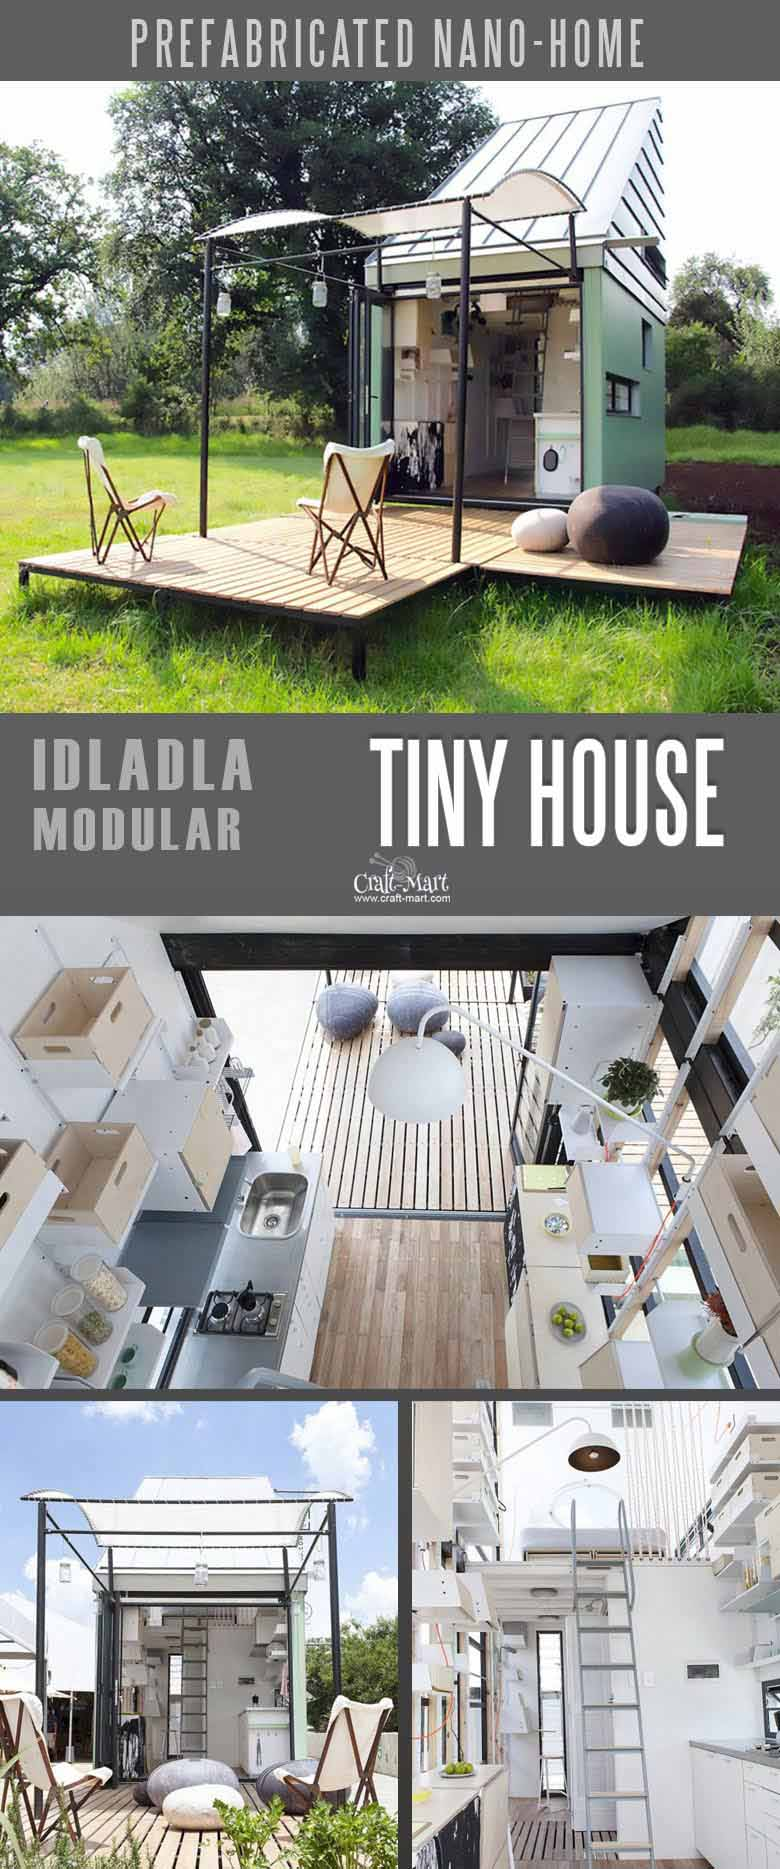 High-Tech Modern Tiny Houses Most of Us Can Afford - Craft-Mart